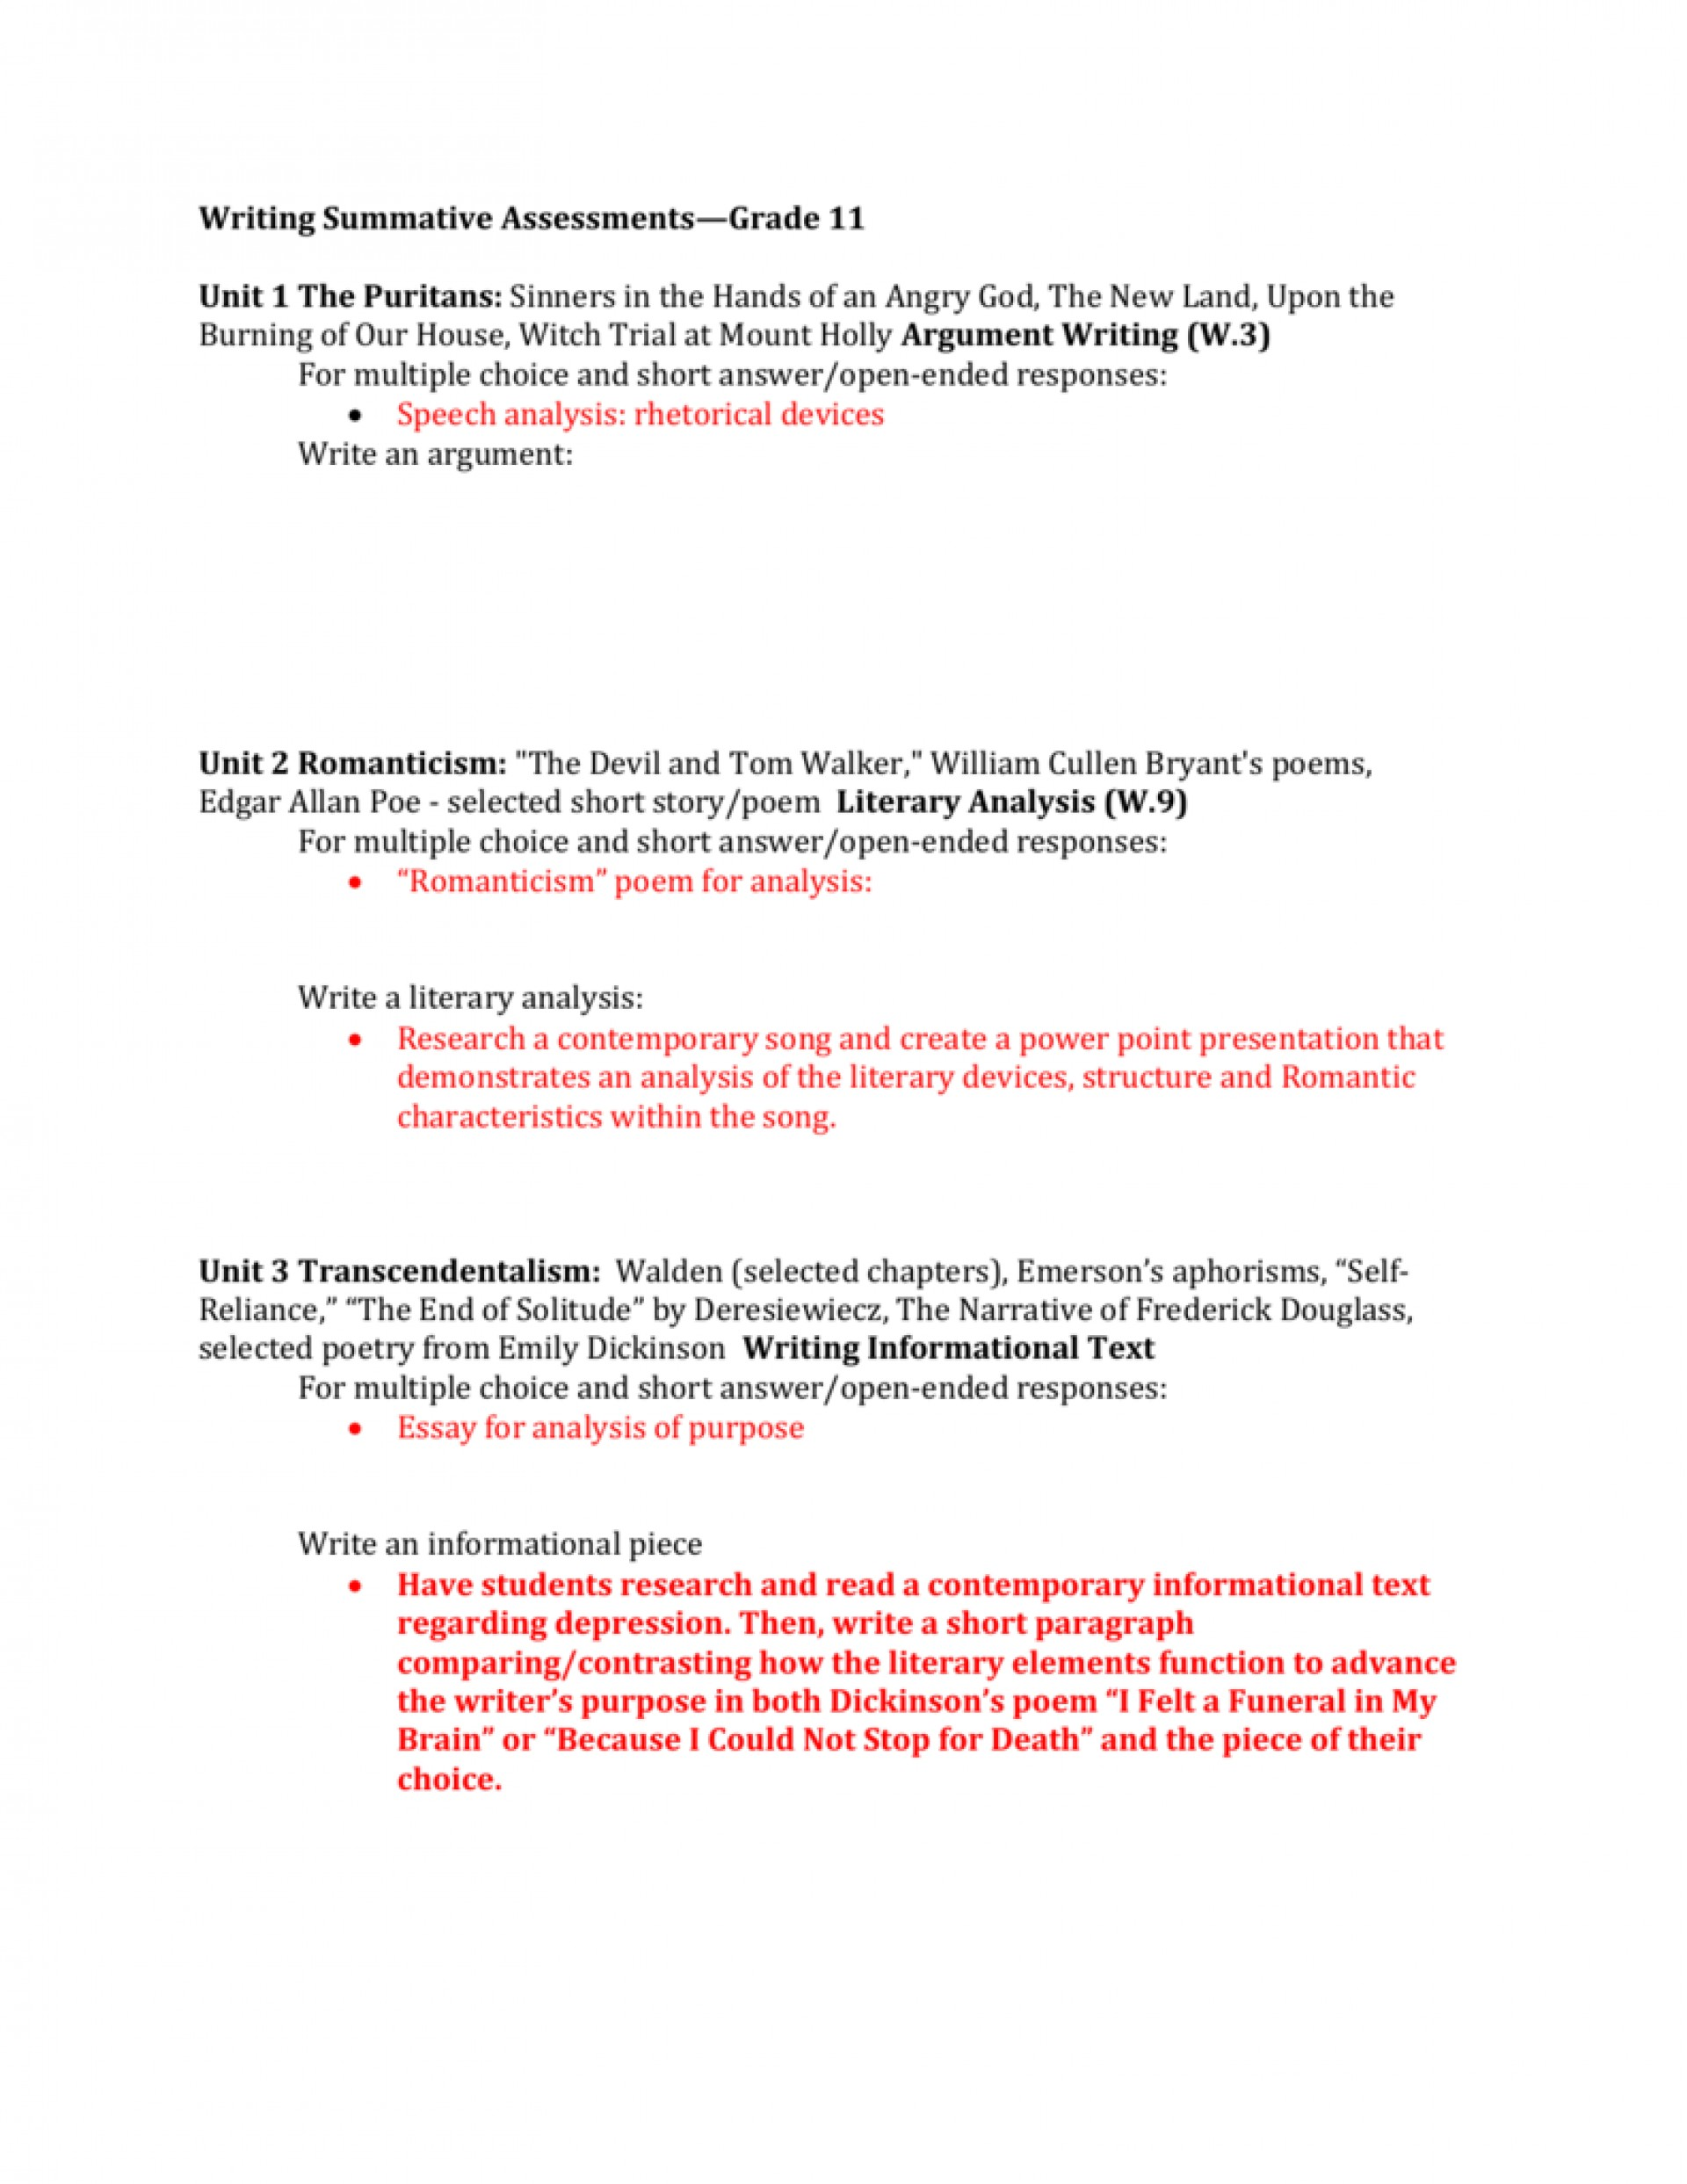 005 Essay On Because I Could Not Stop For Death Example 009038928 1 Top Conclusion Analytical Sample 1920